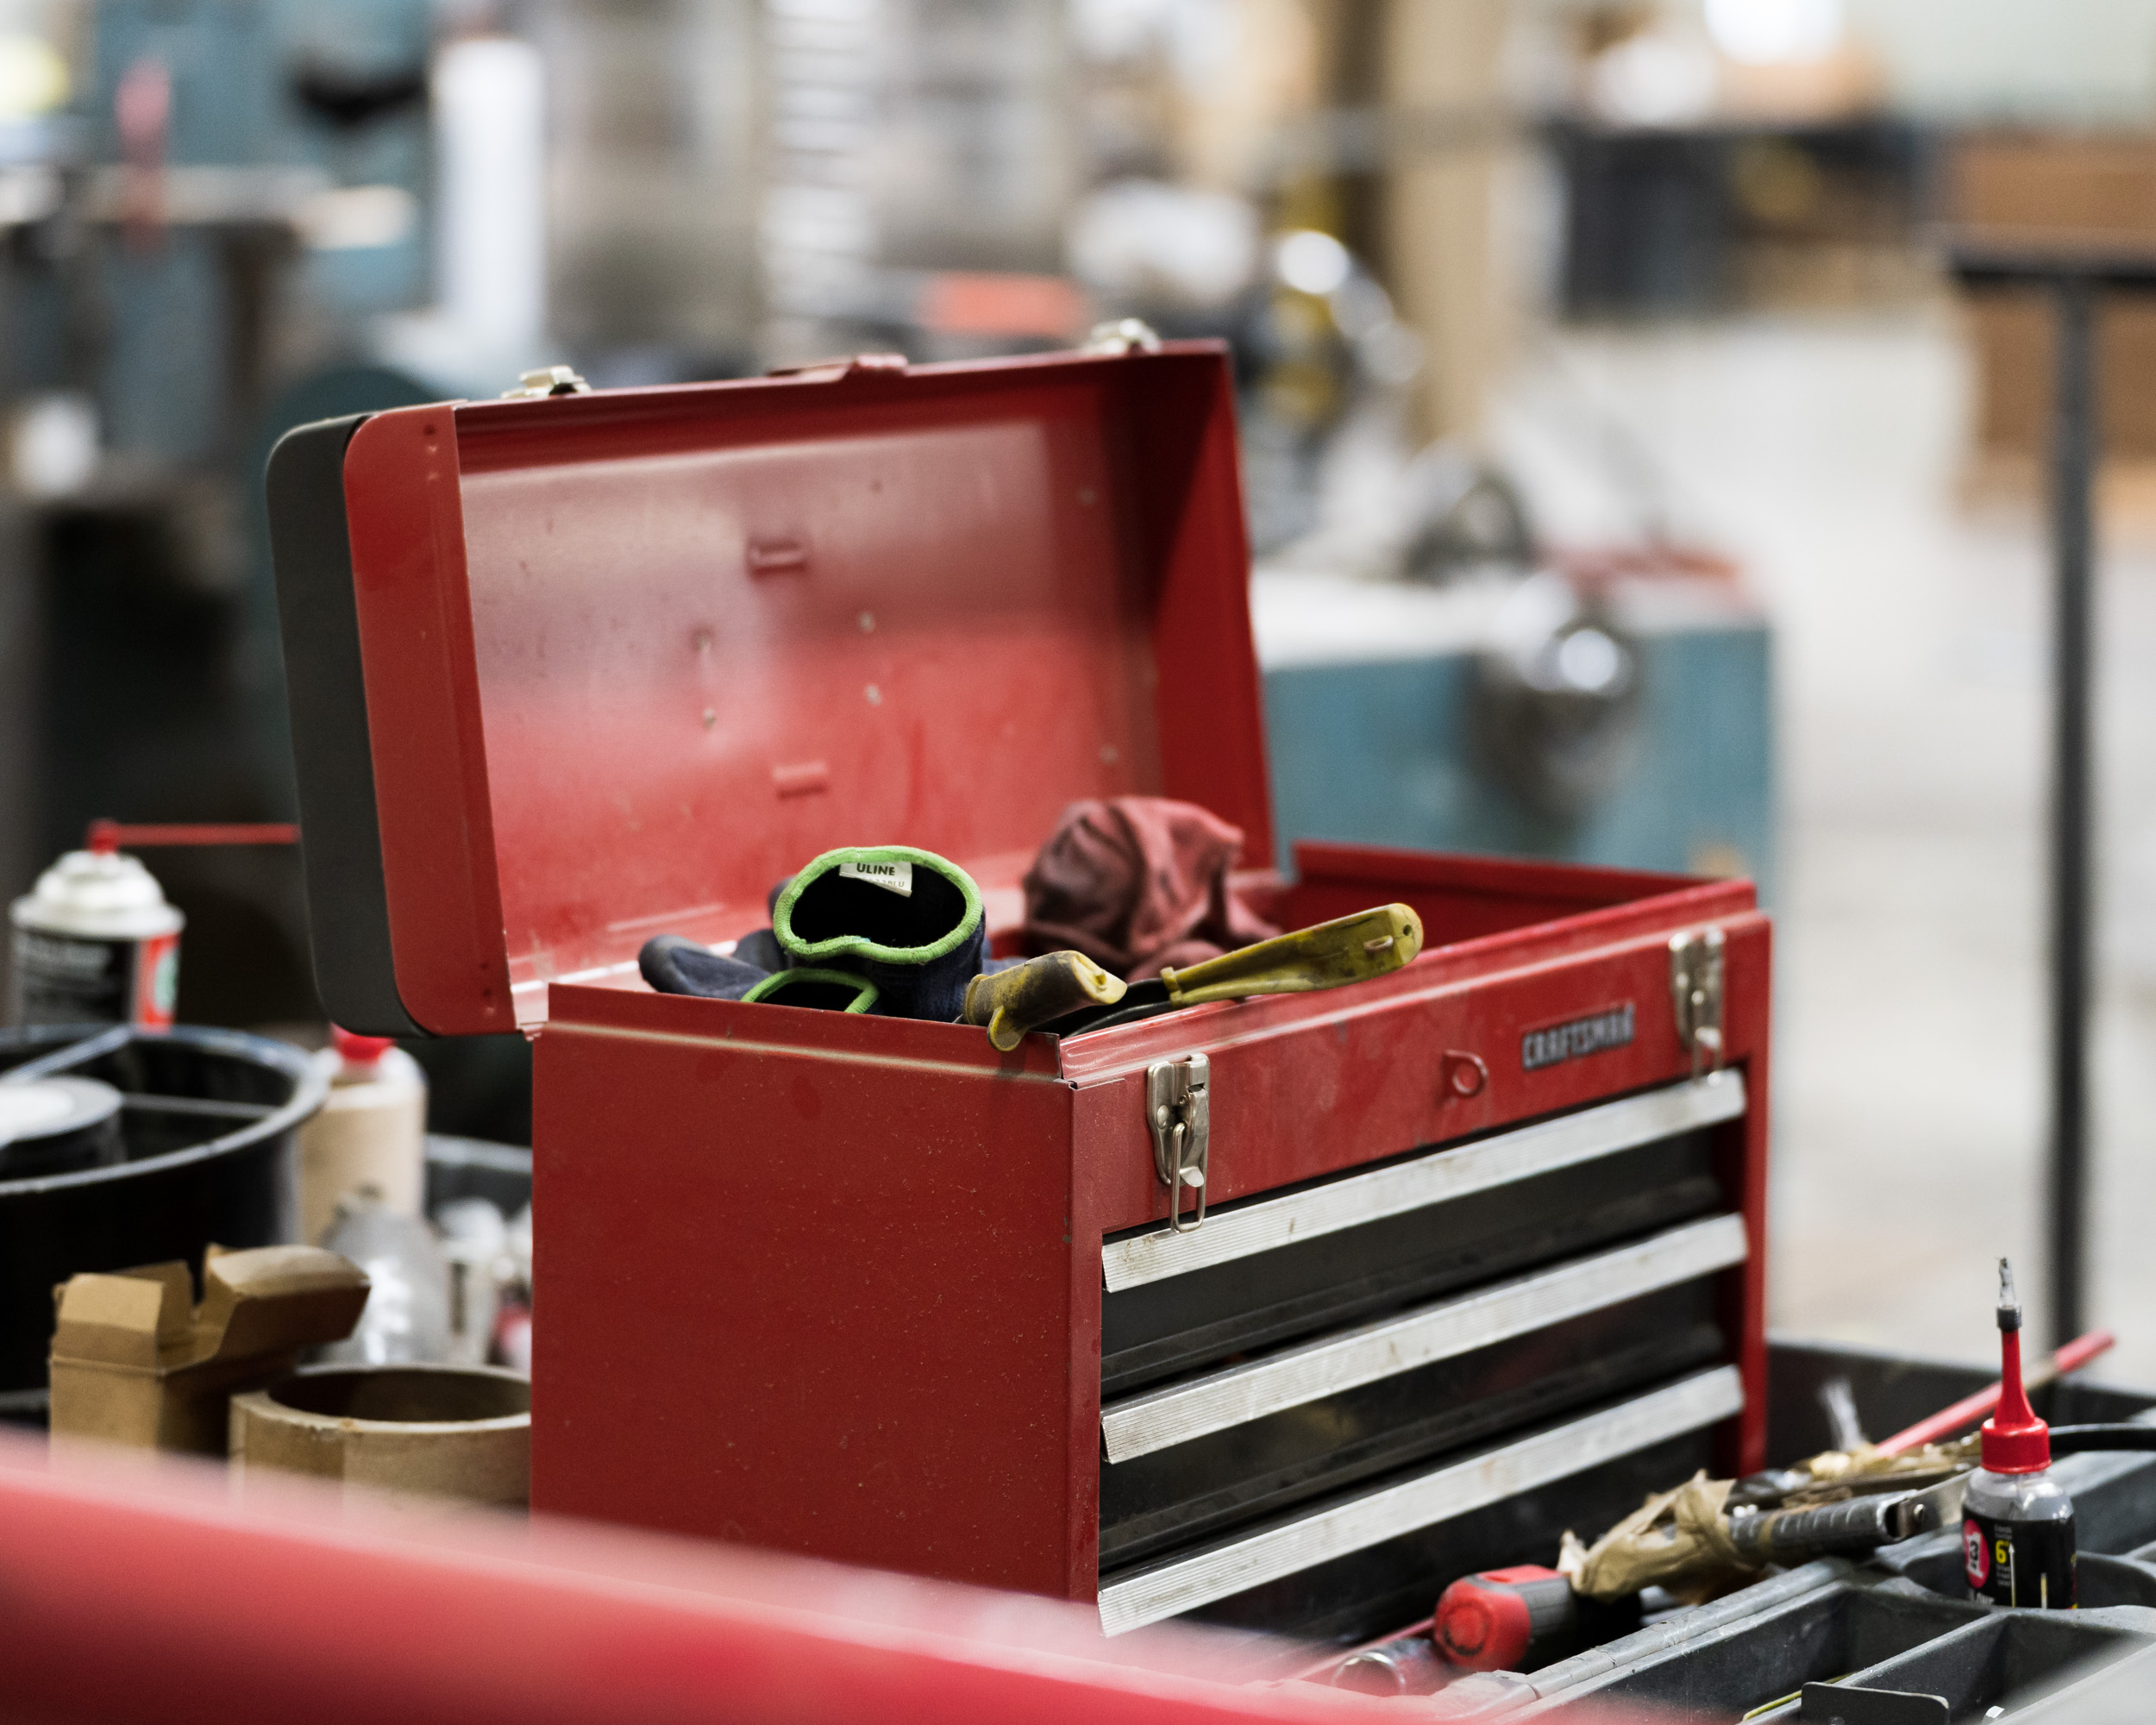 A red toolbox